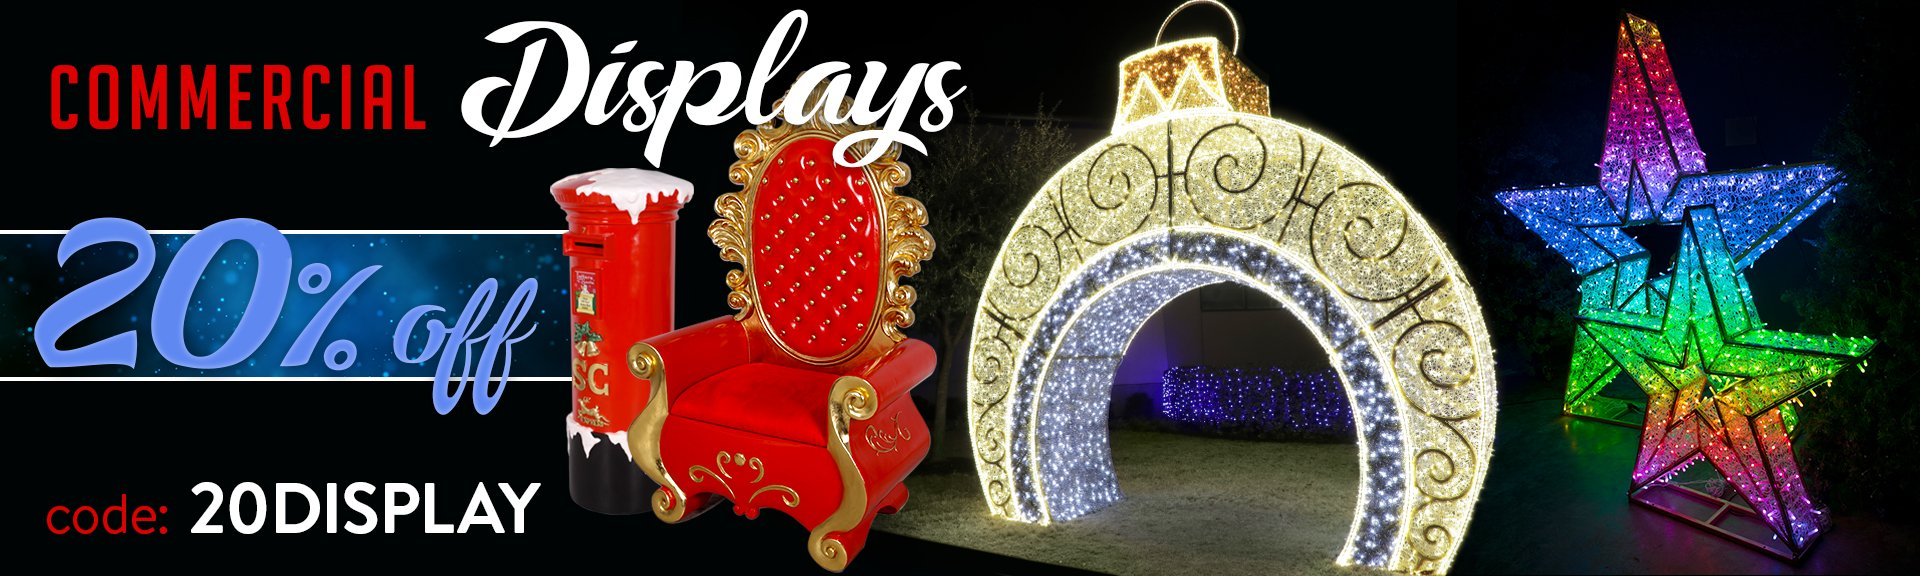 20% Off Commercial Displays